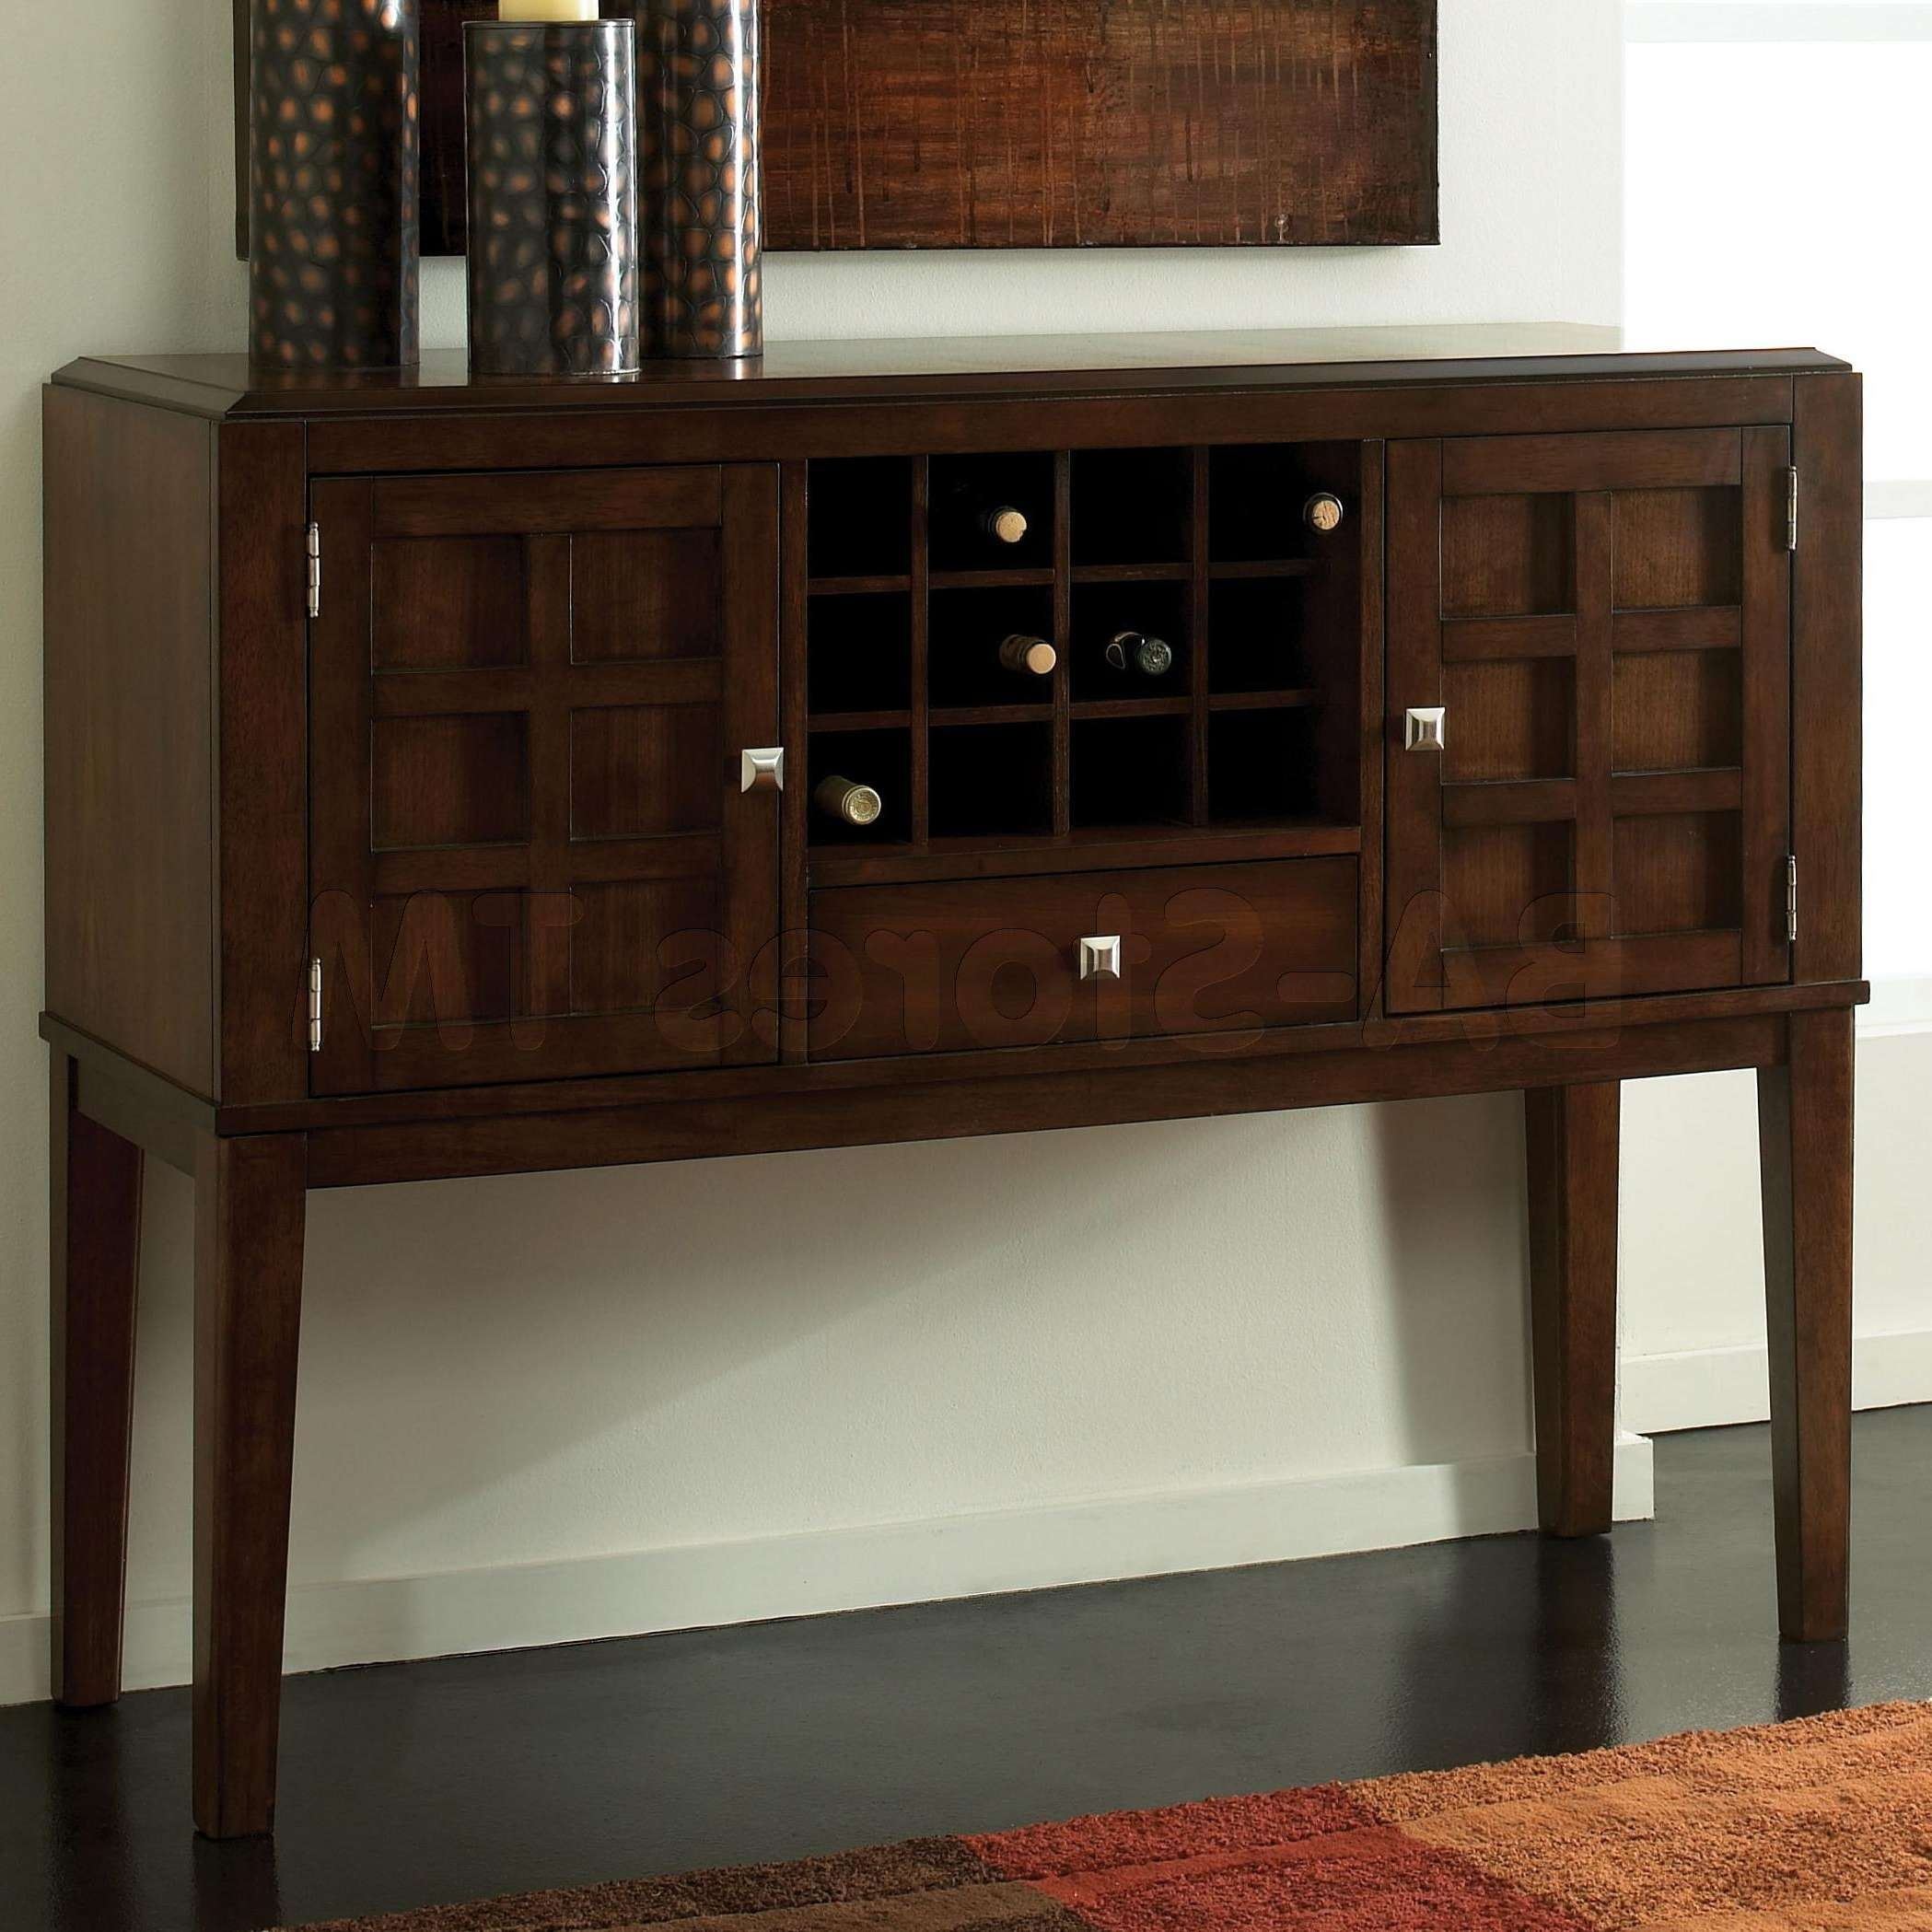 Inspirational Dining Room Sideboards And Buffets – Bjdgjy With Regard To Dining Room Sideboards (View 14 of 20)